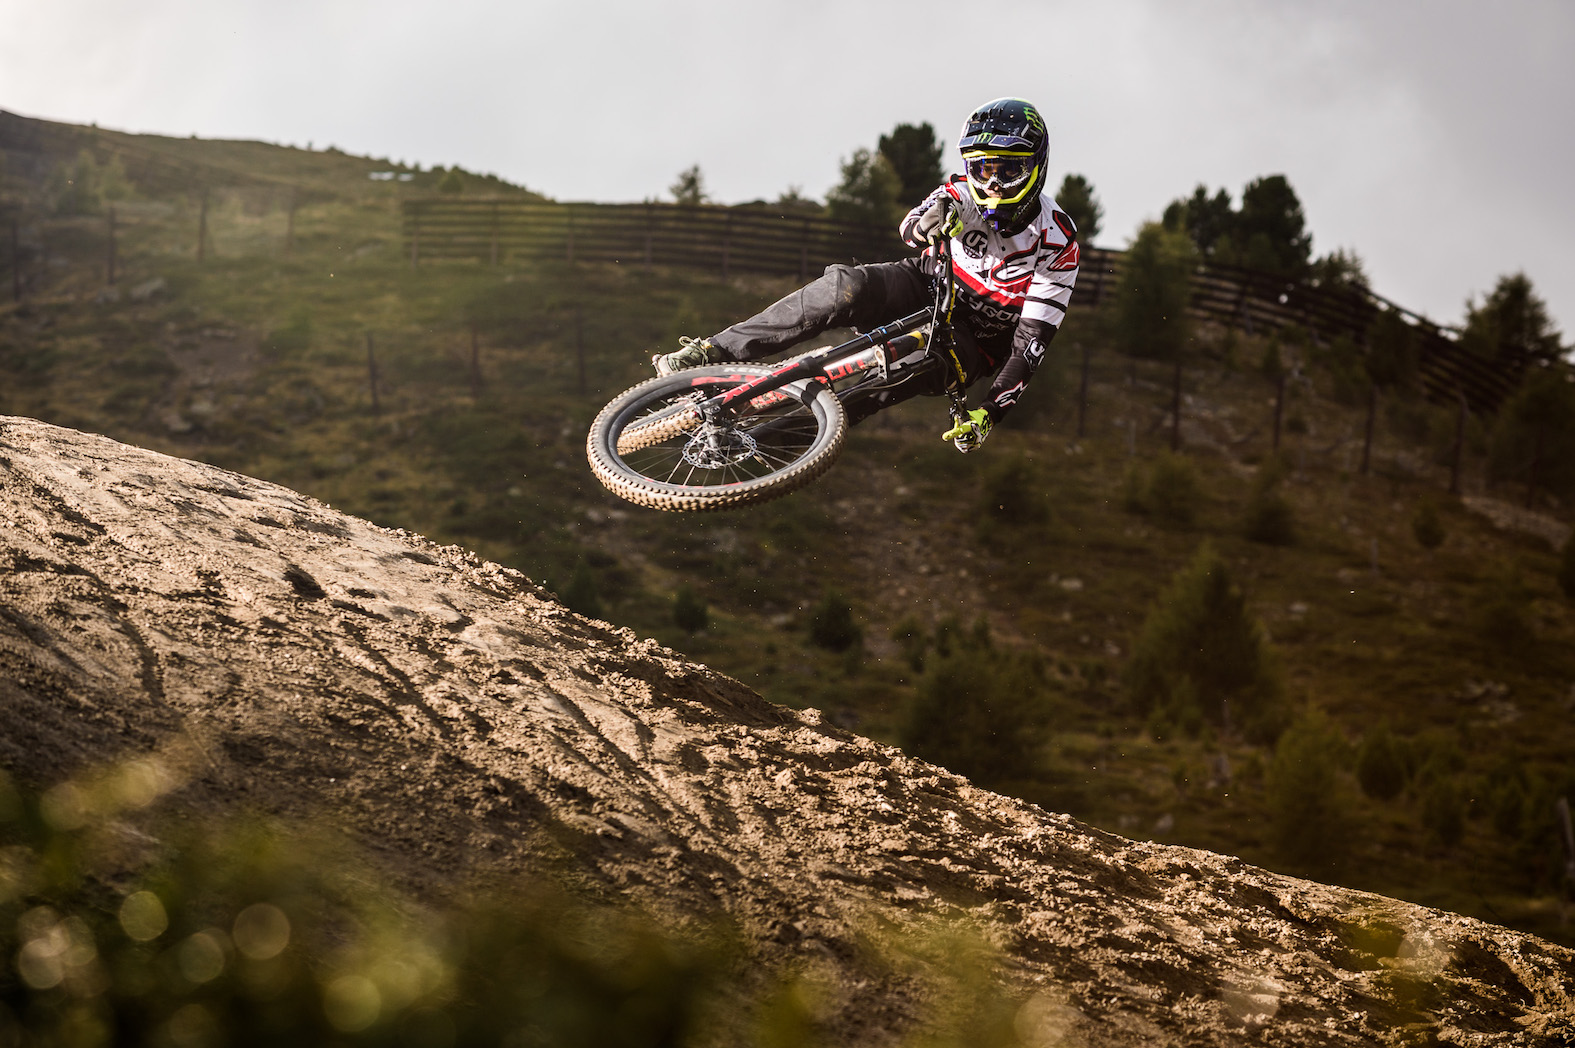 We talk to Sam Reynolds about winning the 2017 Suzuki Nine Knights Freeride MTB event